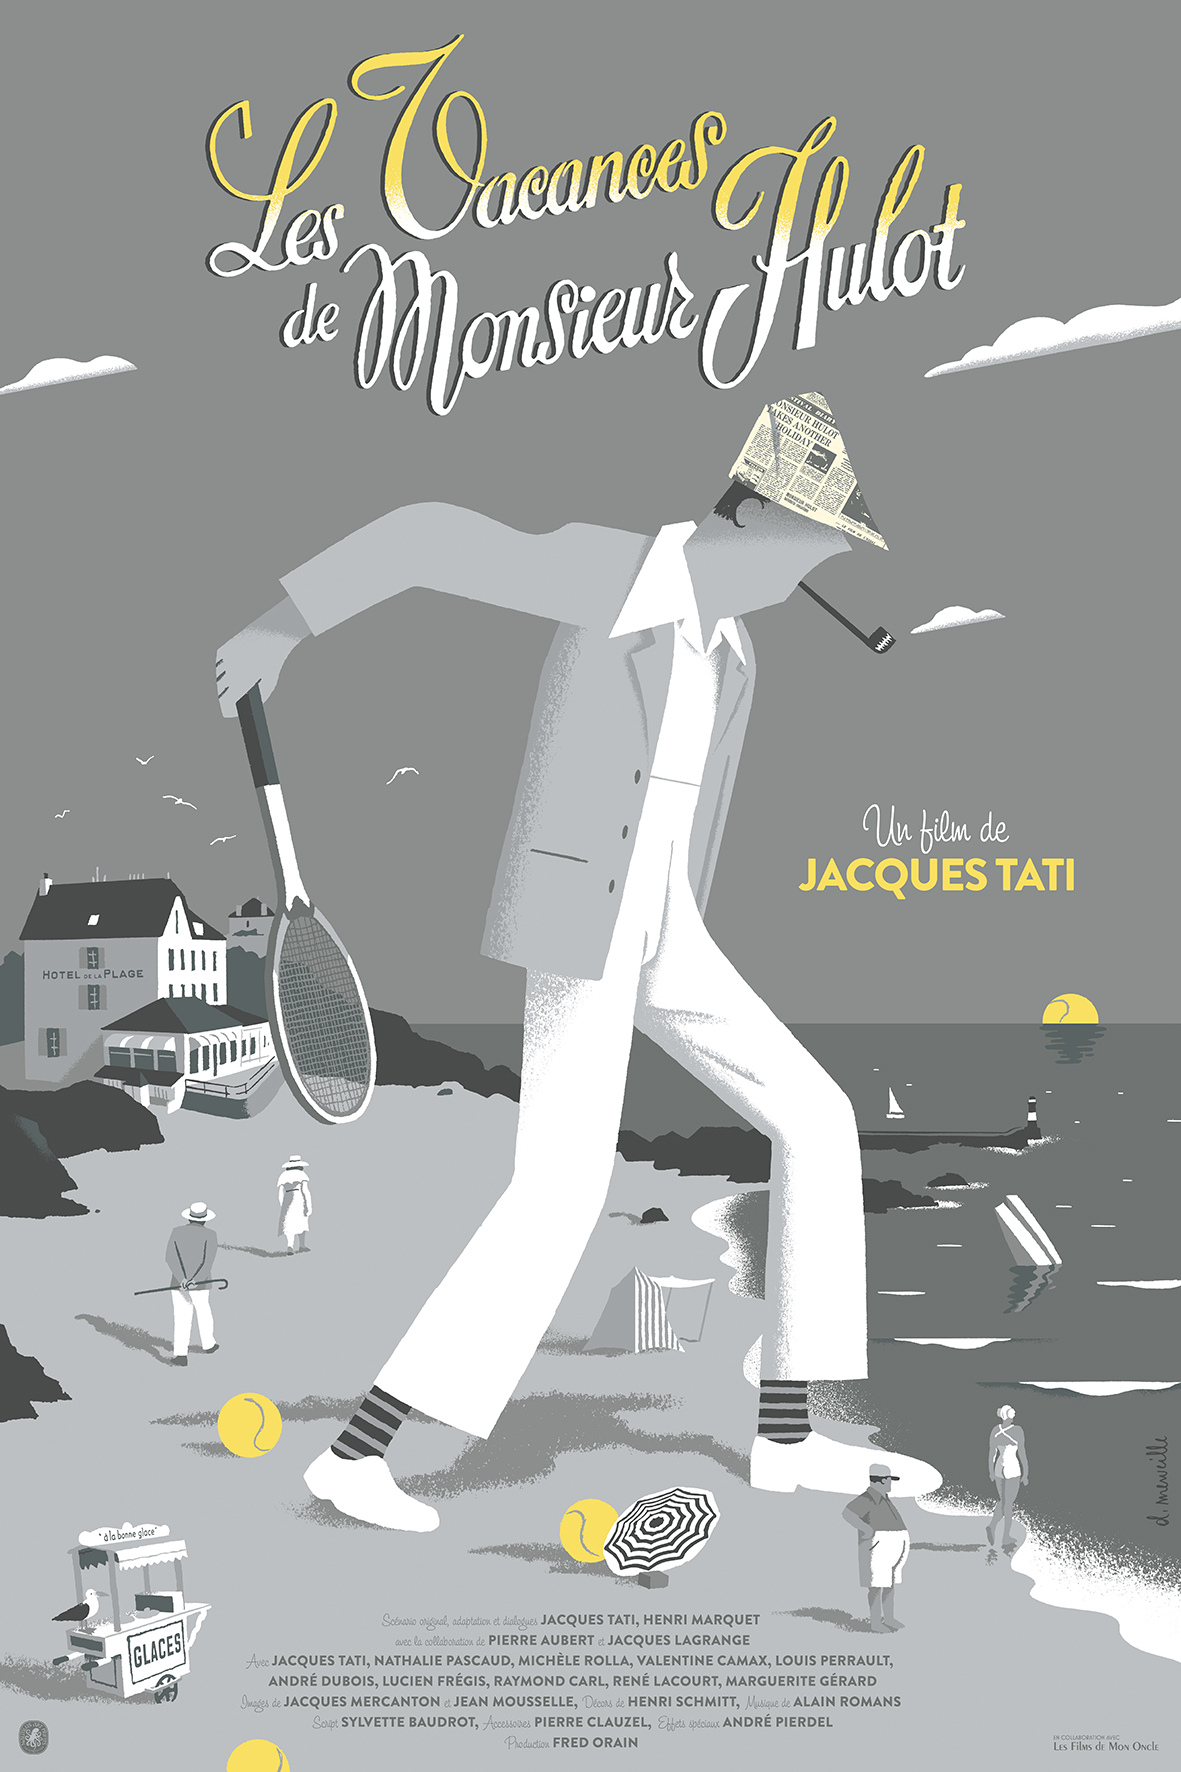 """Les Vacances de Mr Hulot"" by David Merveille.  24"" x 36"" 7-color Screenprint.  Ed of 150 S/N.  $56"